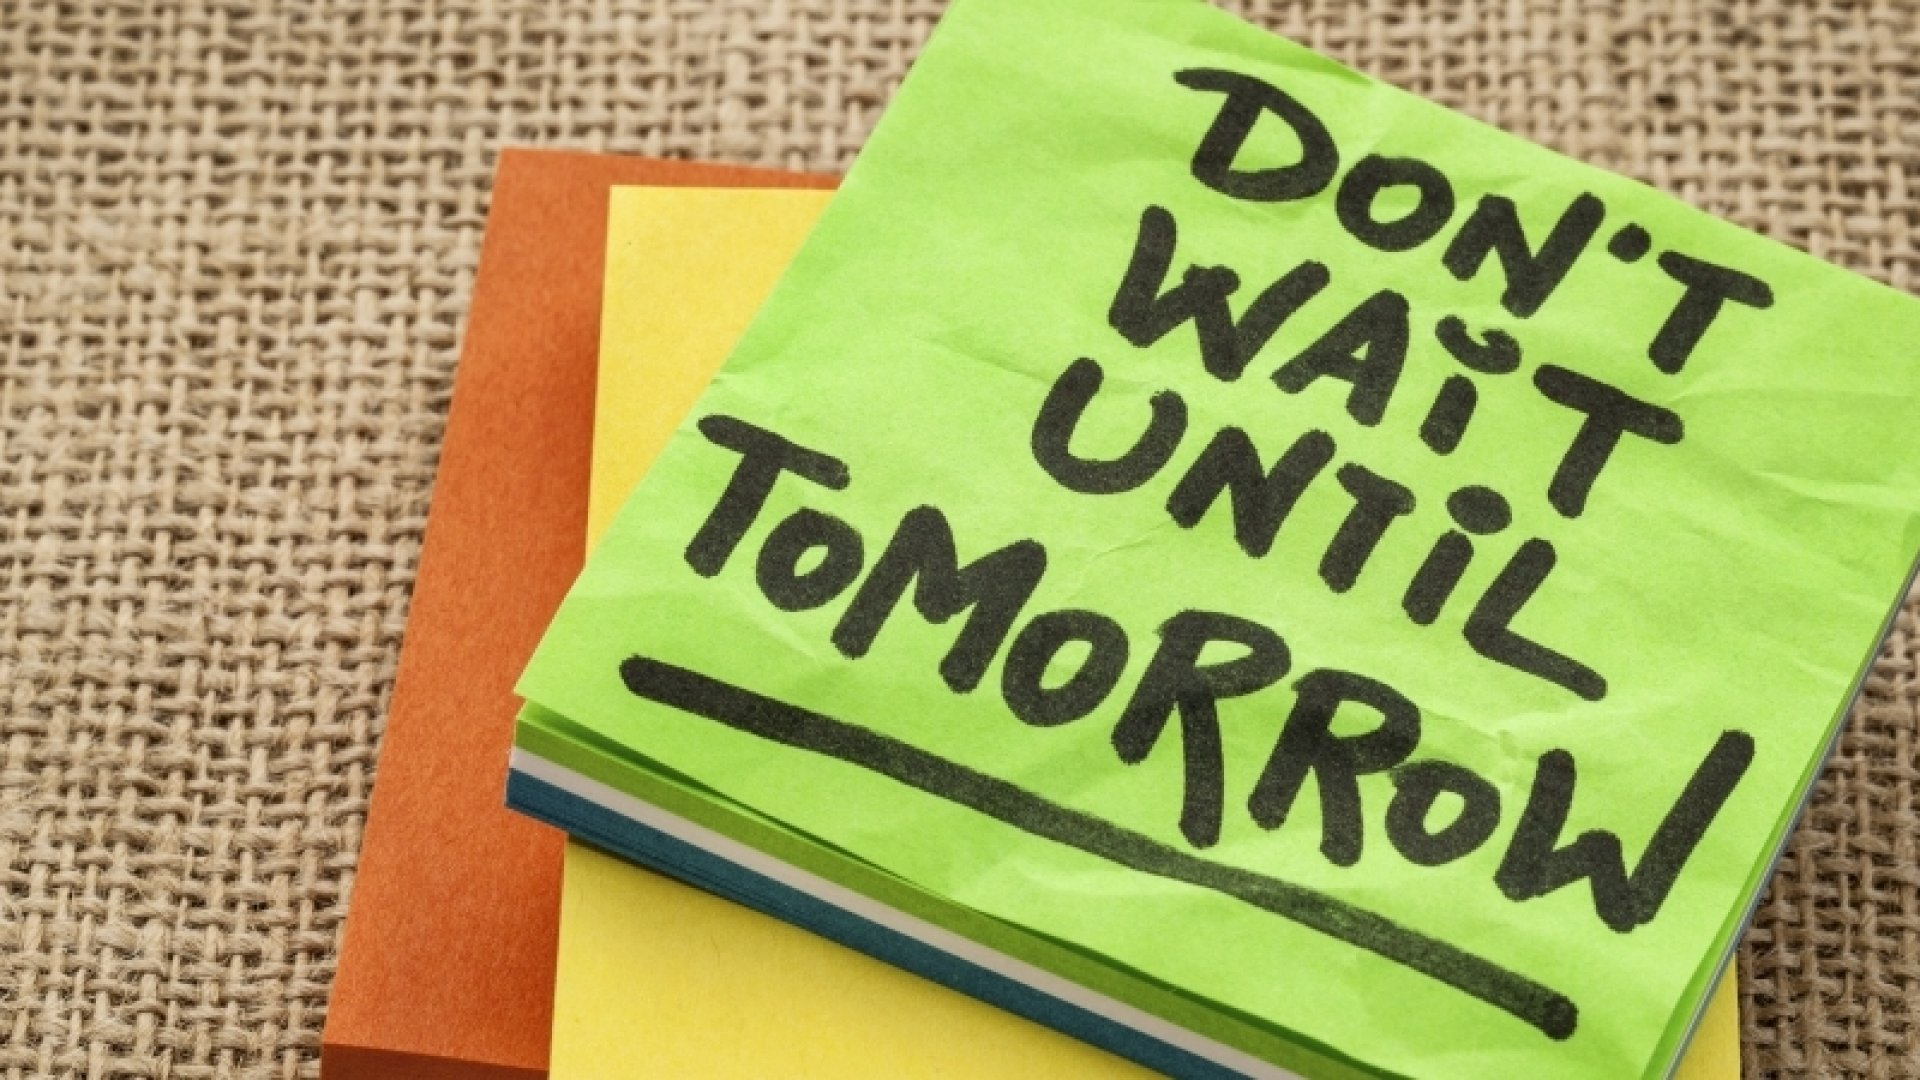 6 Oh-So Pleasurable Steps to Eliminate Procrastination